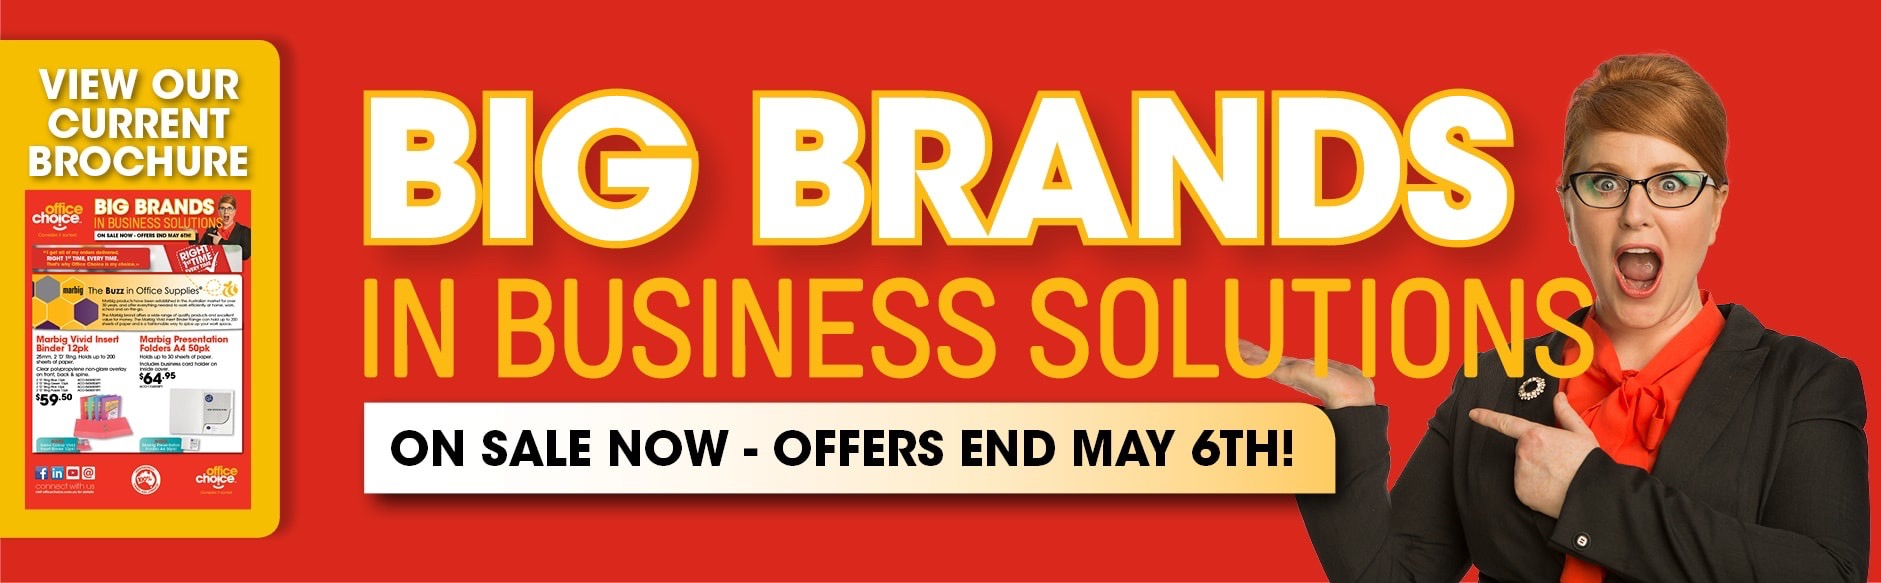 Big Brands in Business Solutions